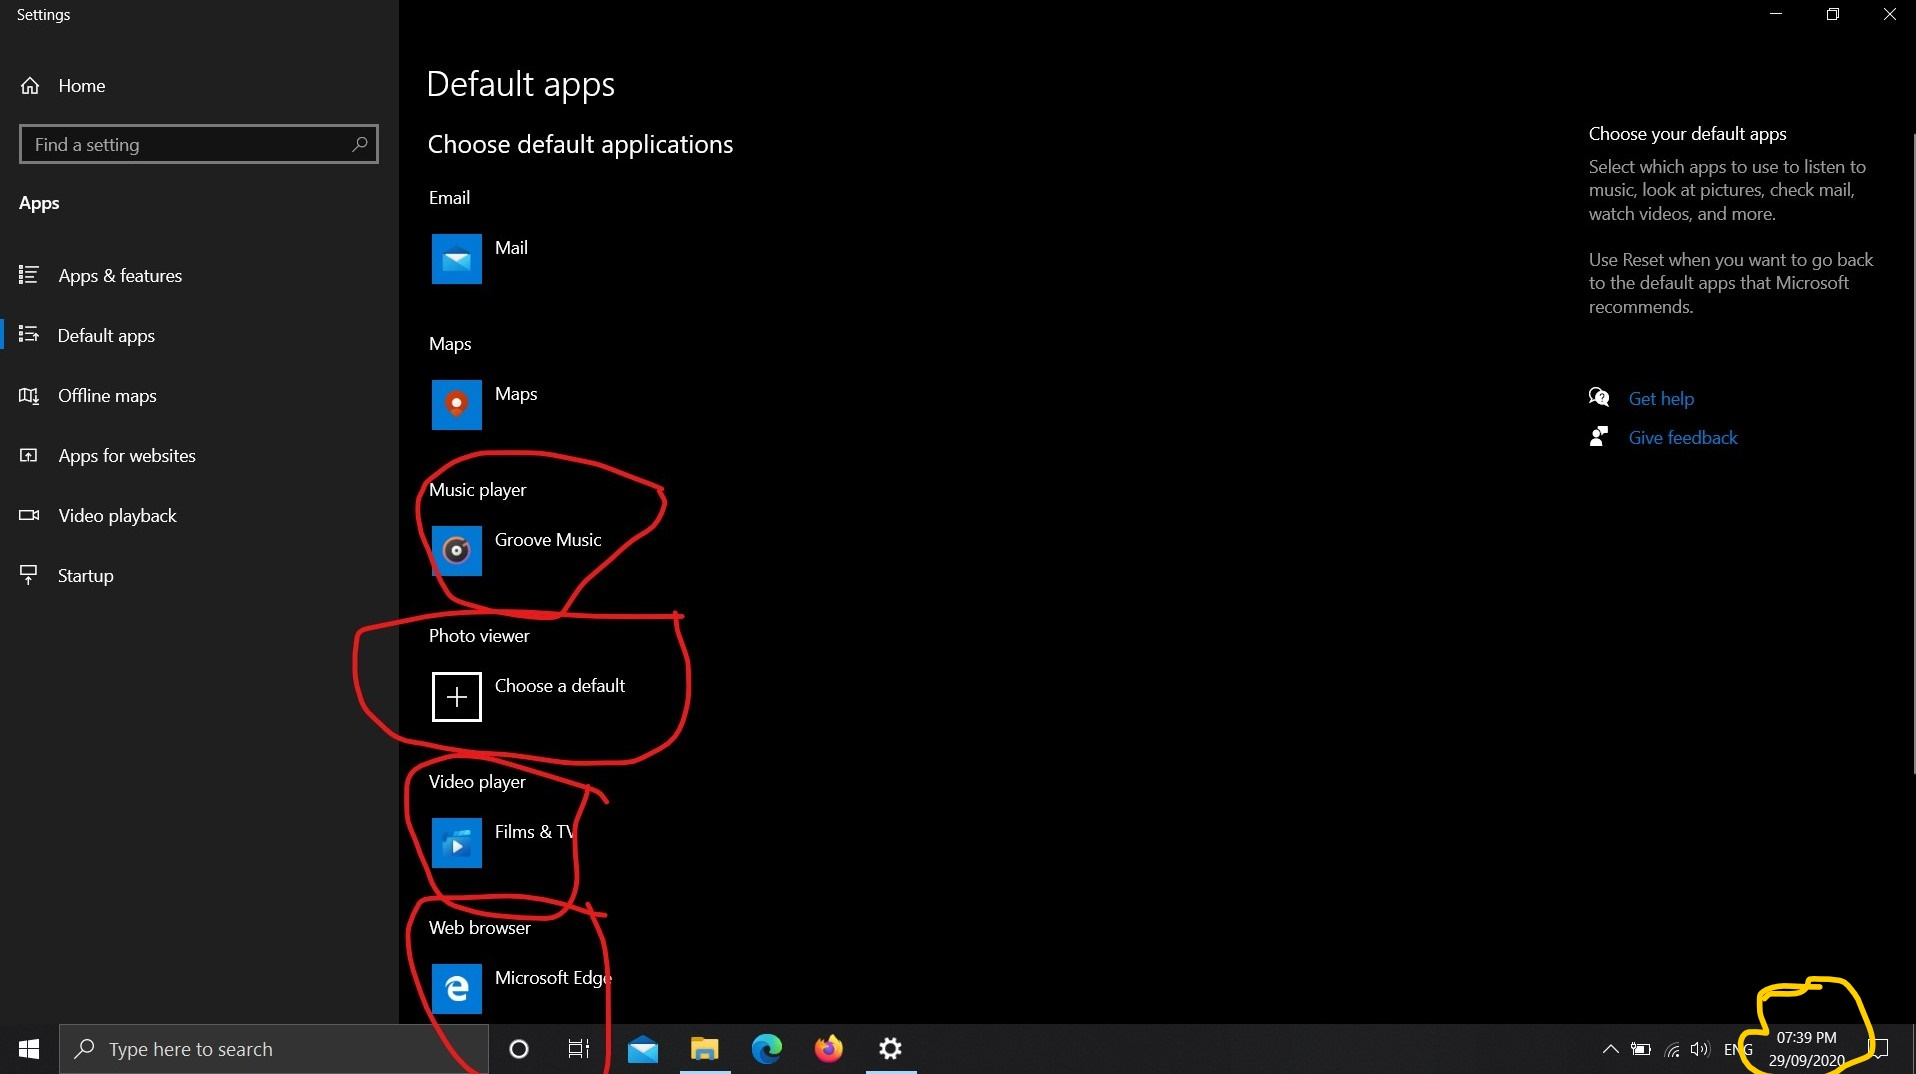 Windows 10 is automatically resetting my default applications after restart. How do I stop... eb6ea69e-aa00-434c-ba67-655656f71323?upload=true.jpg